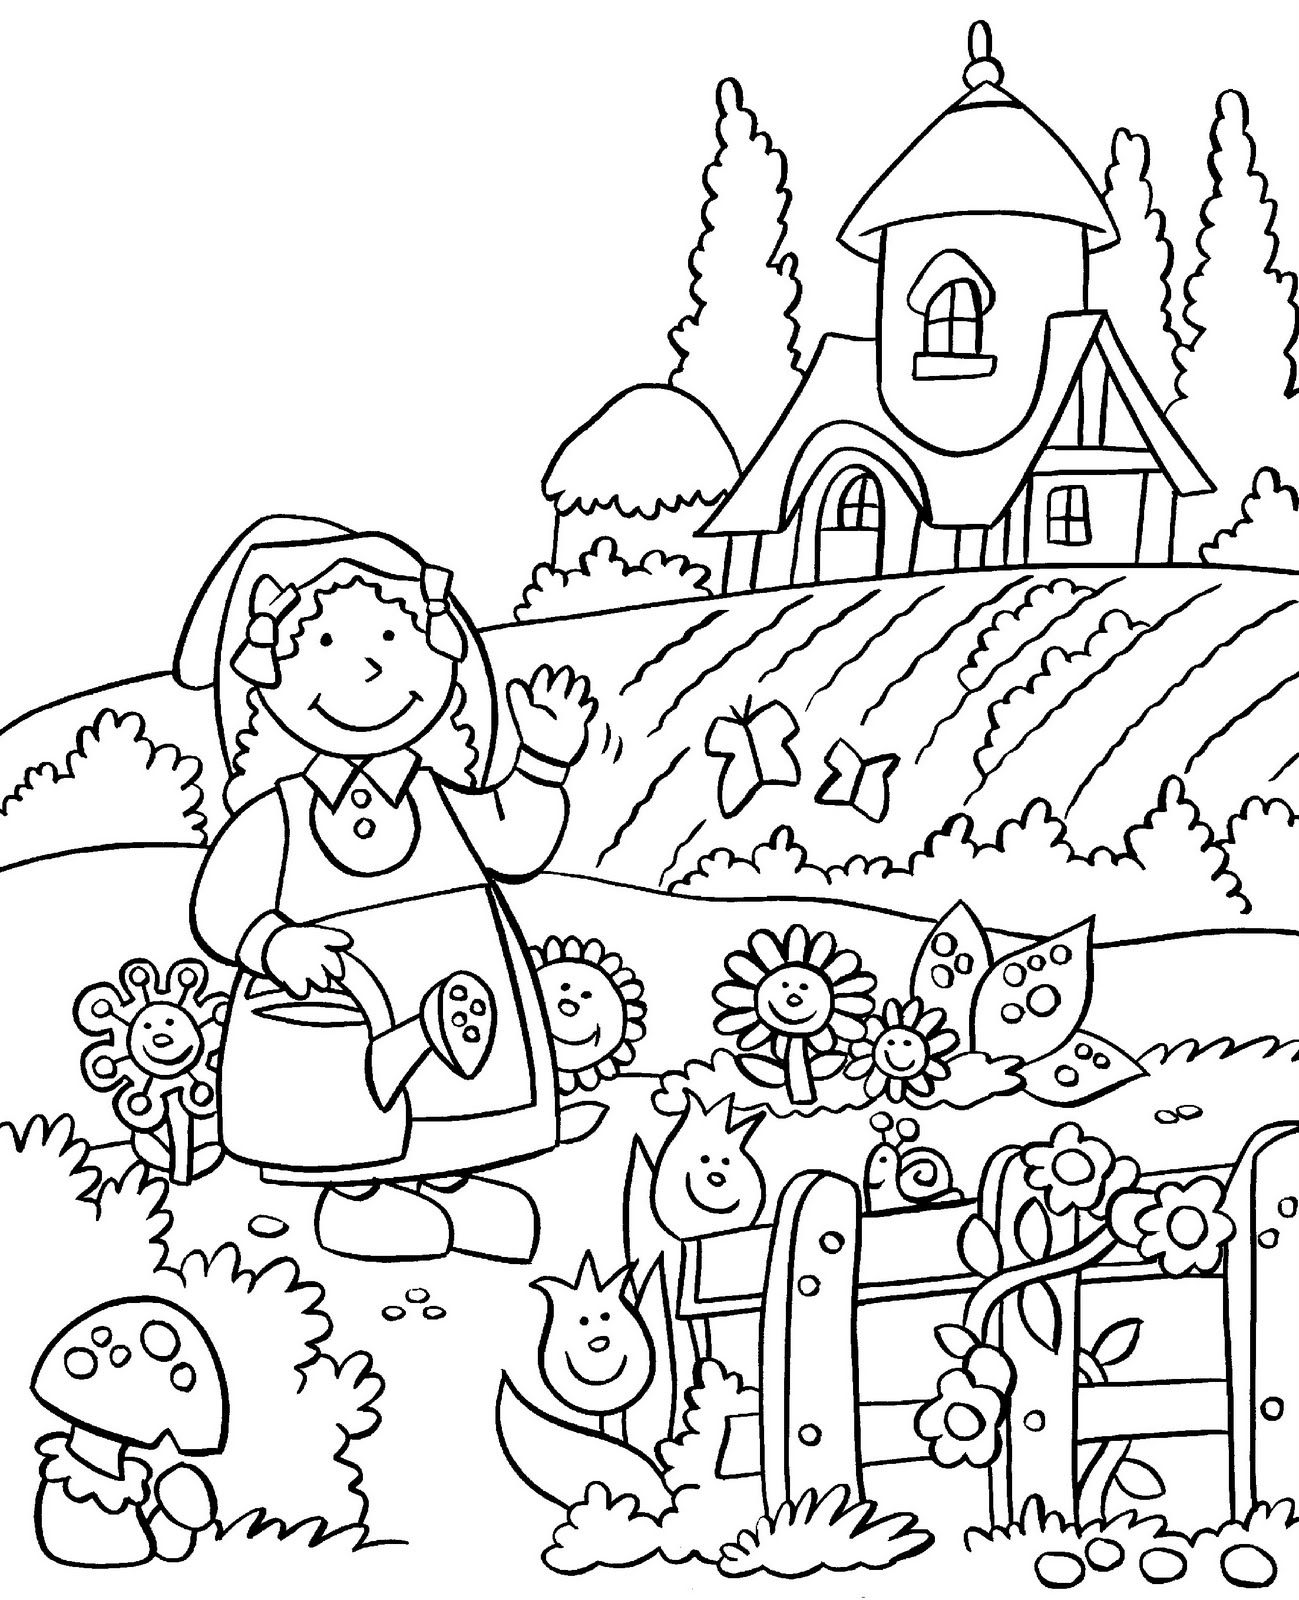 Gardening Coloring Page For Kids Color Dibujos Dibujo De